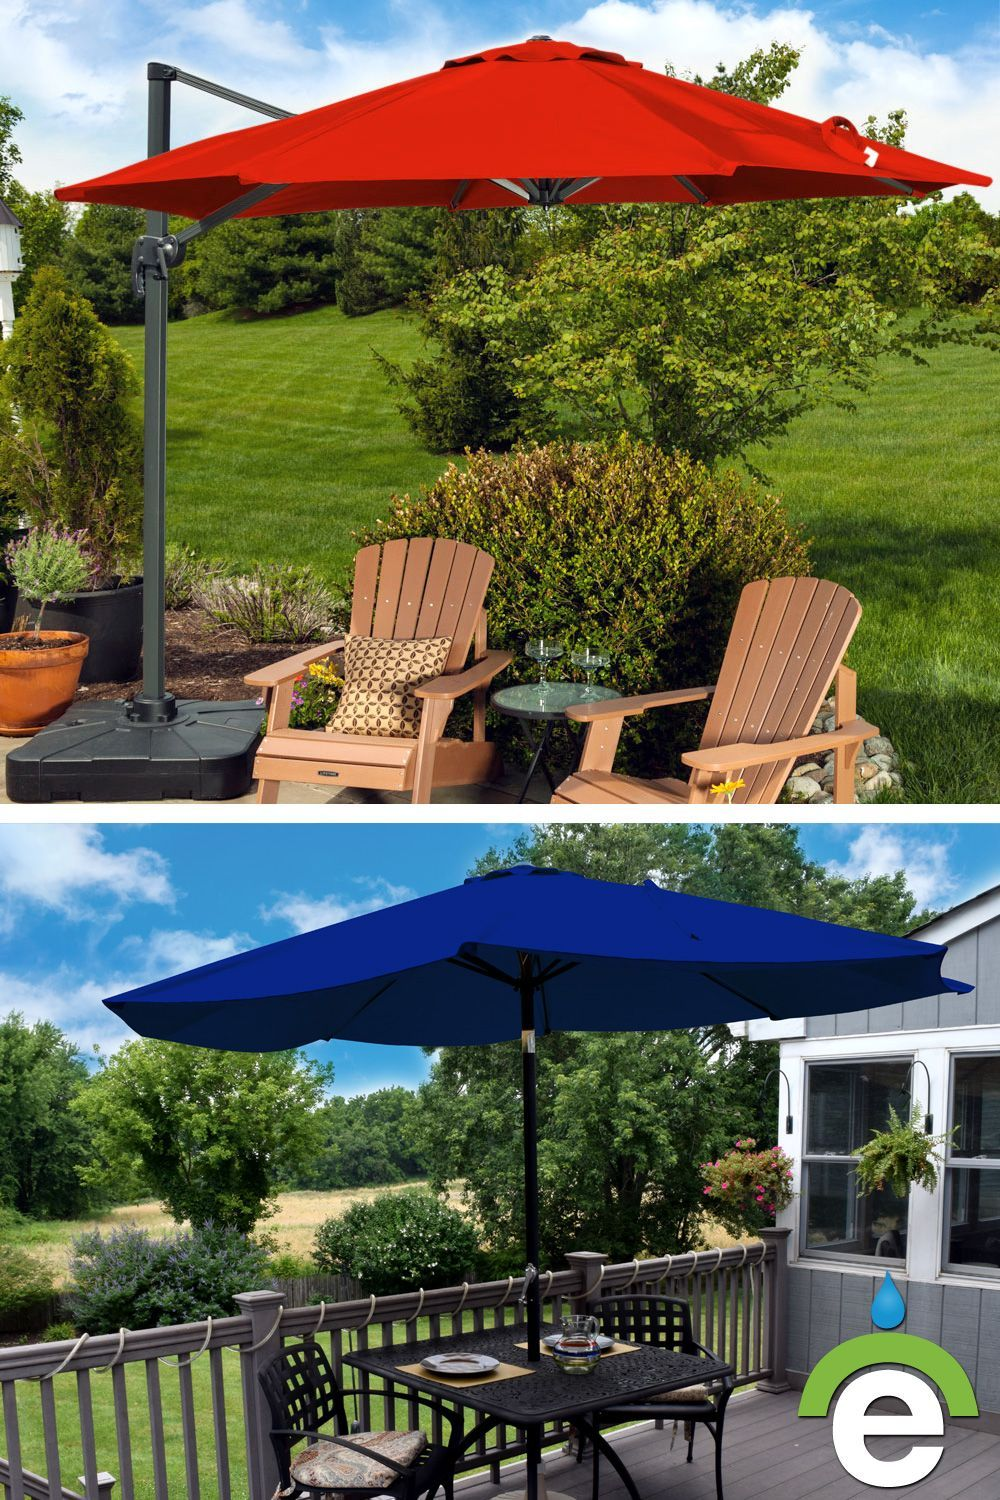 Our outdoor umbrellas are ideal for residential backyards and patios